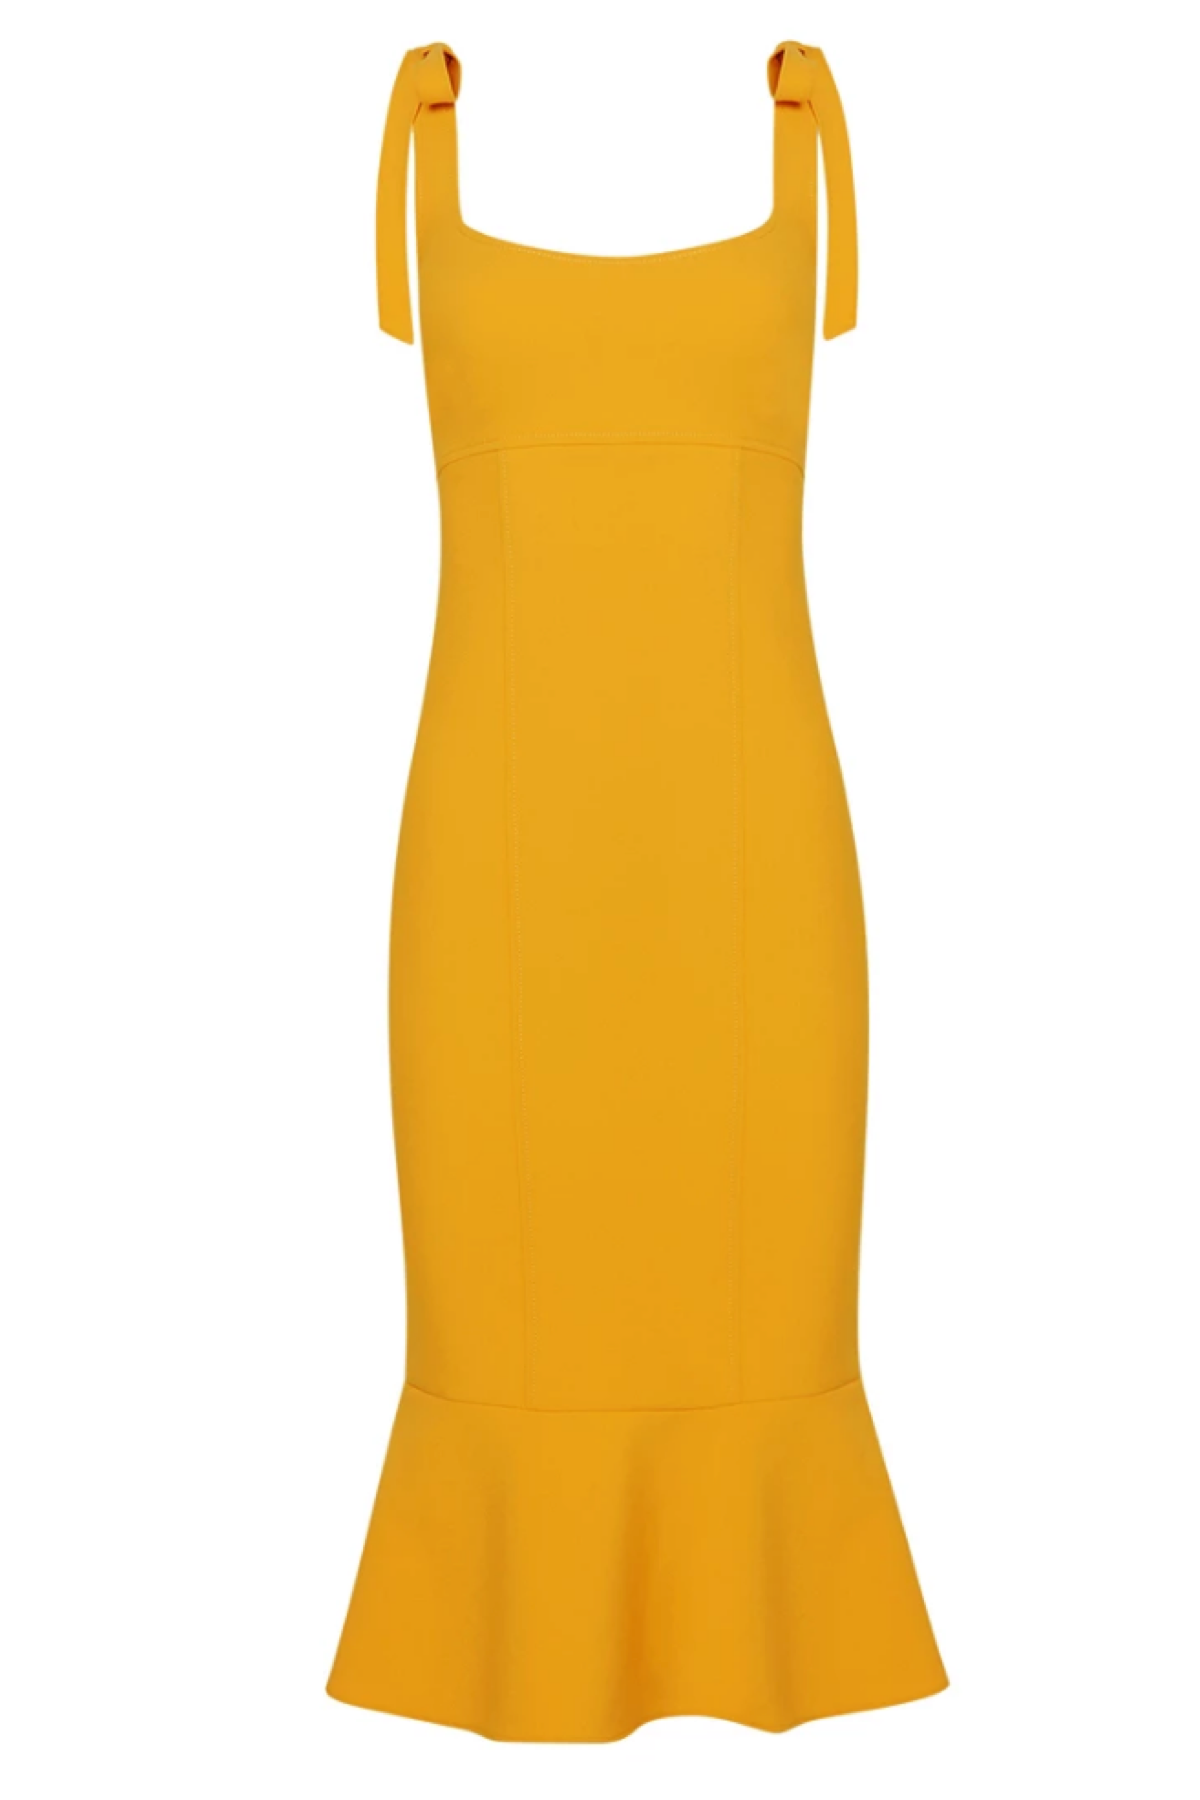 LIKELY ELLERY DRESS IN MARIGOLD